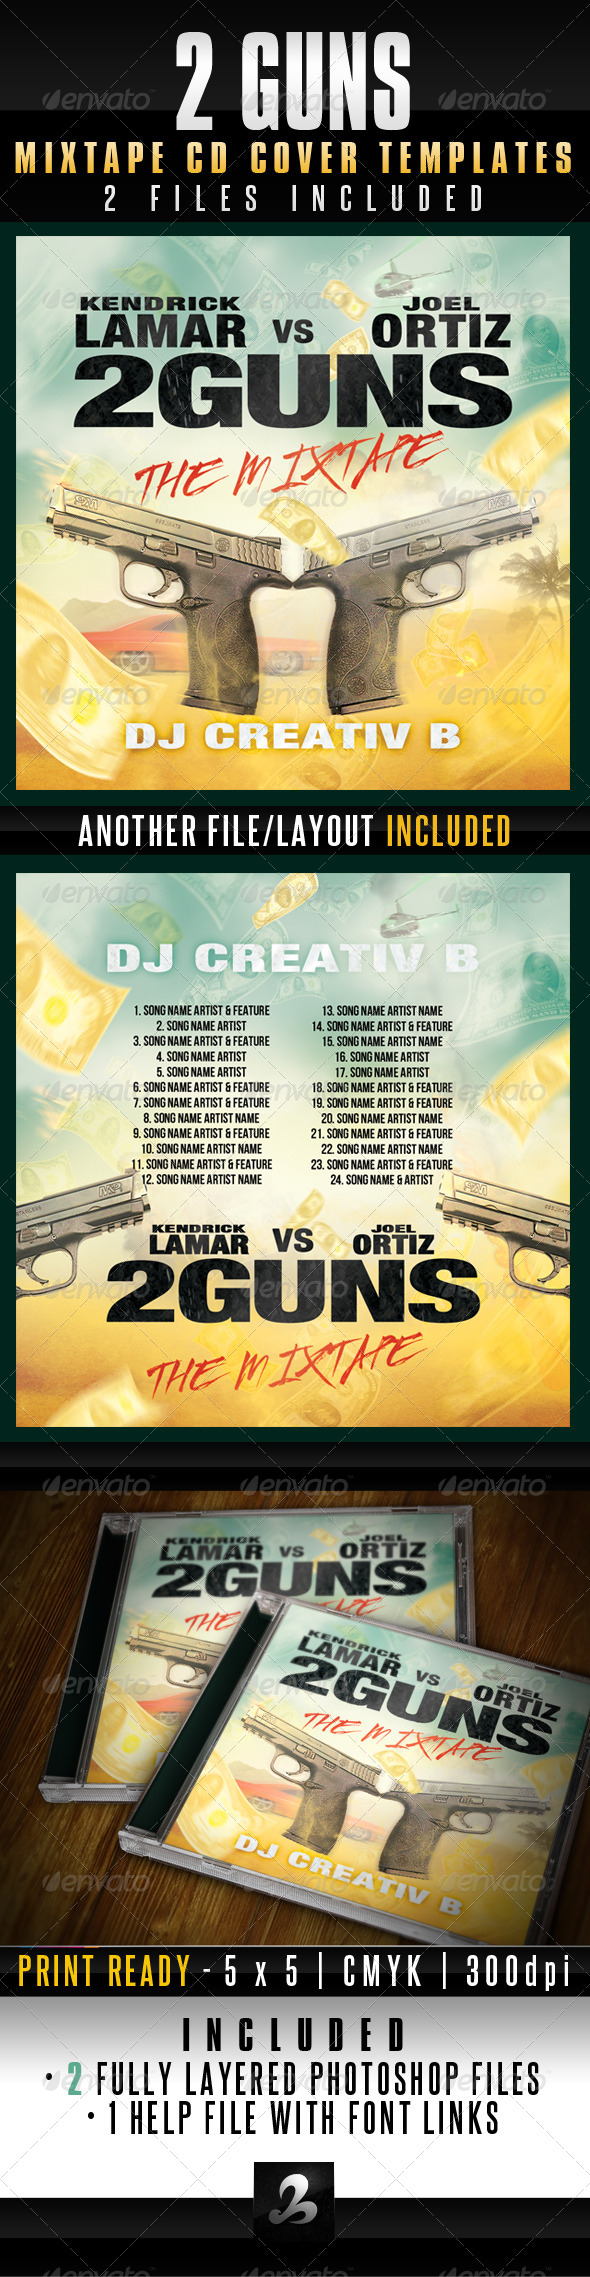 GraphicRiver 2 Guns Mixtape CD Cover Templates 6014249